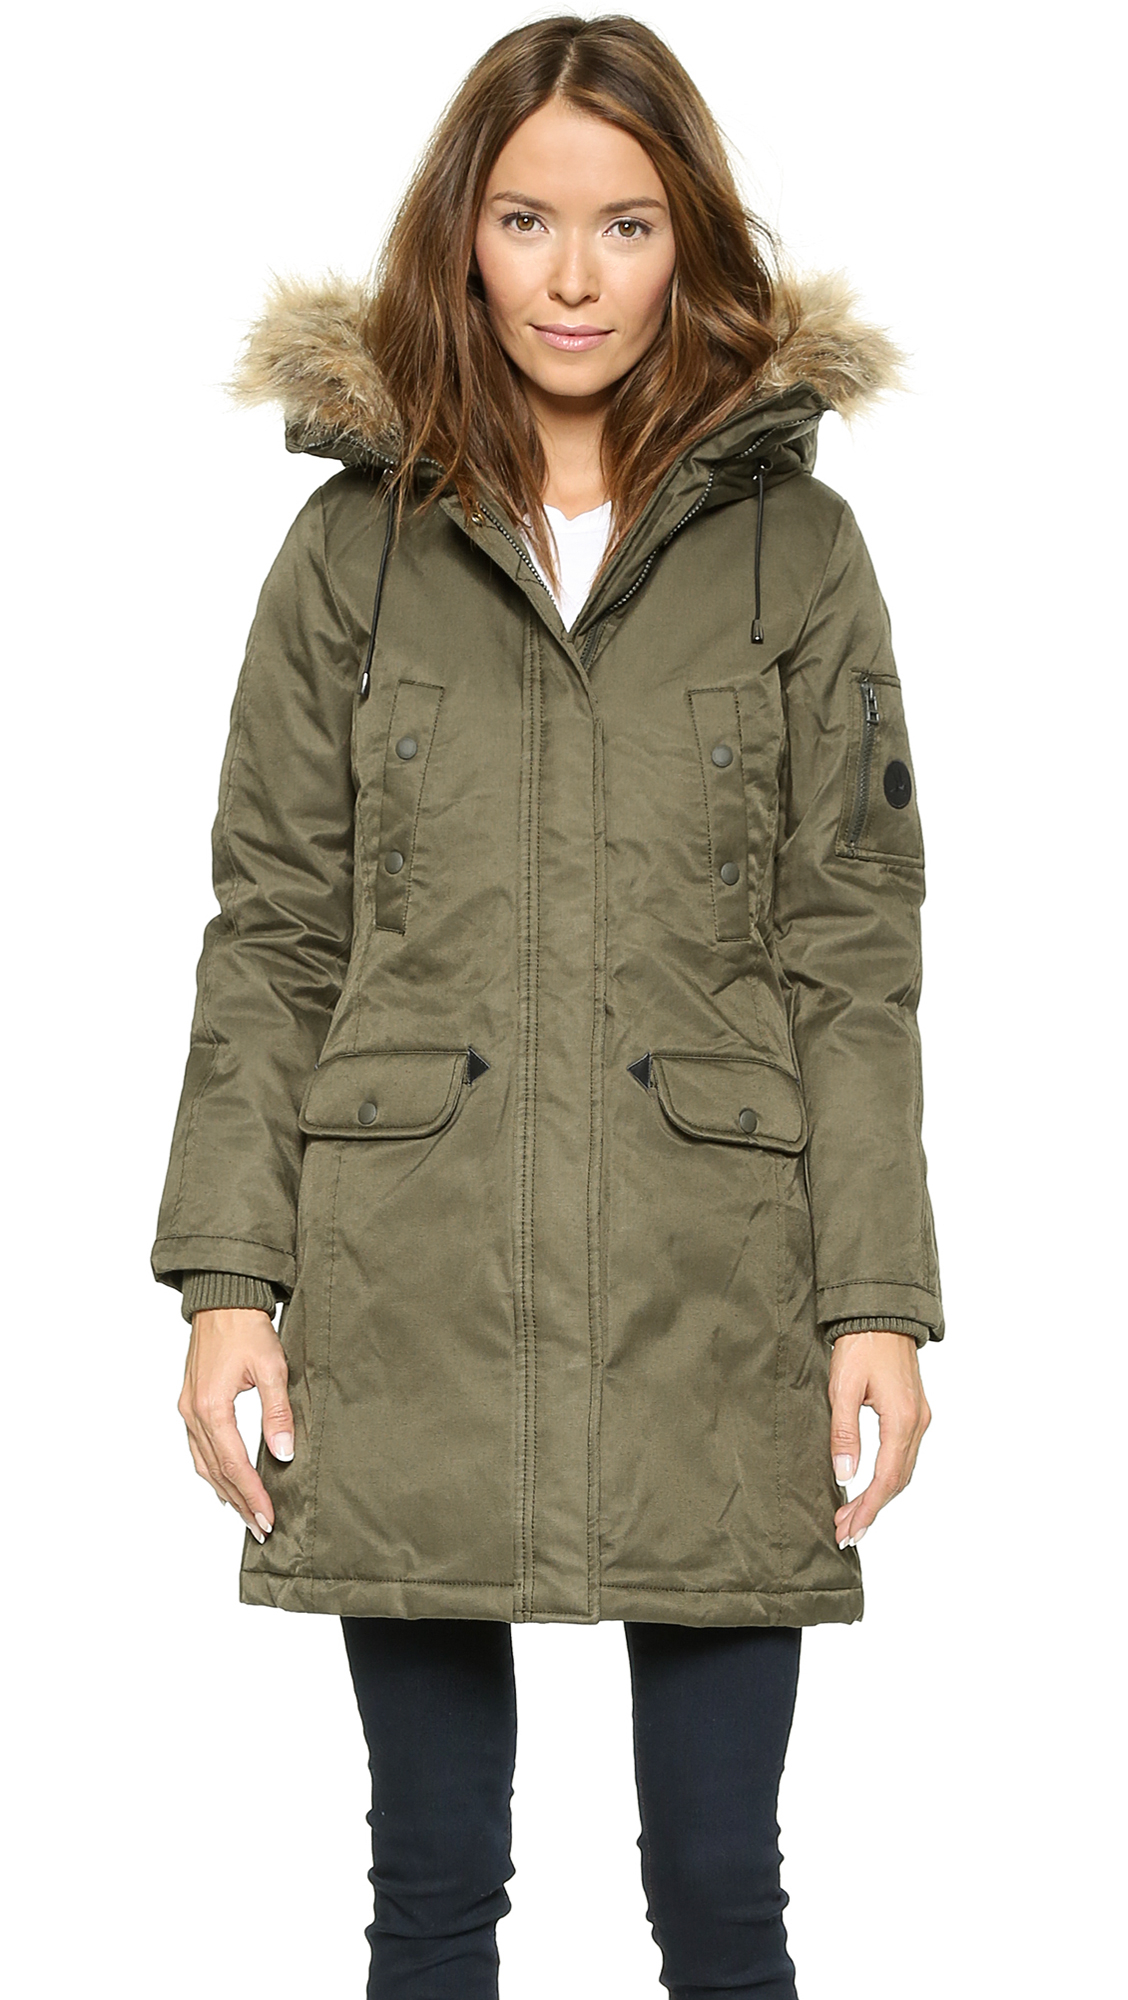 Spiewak Womens Aviation N3-B Faux Fur Parka - Andrea Olive in ...